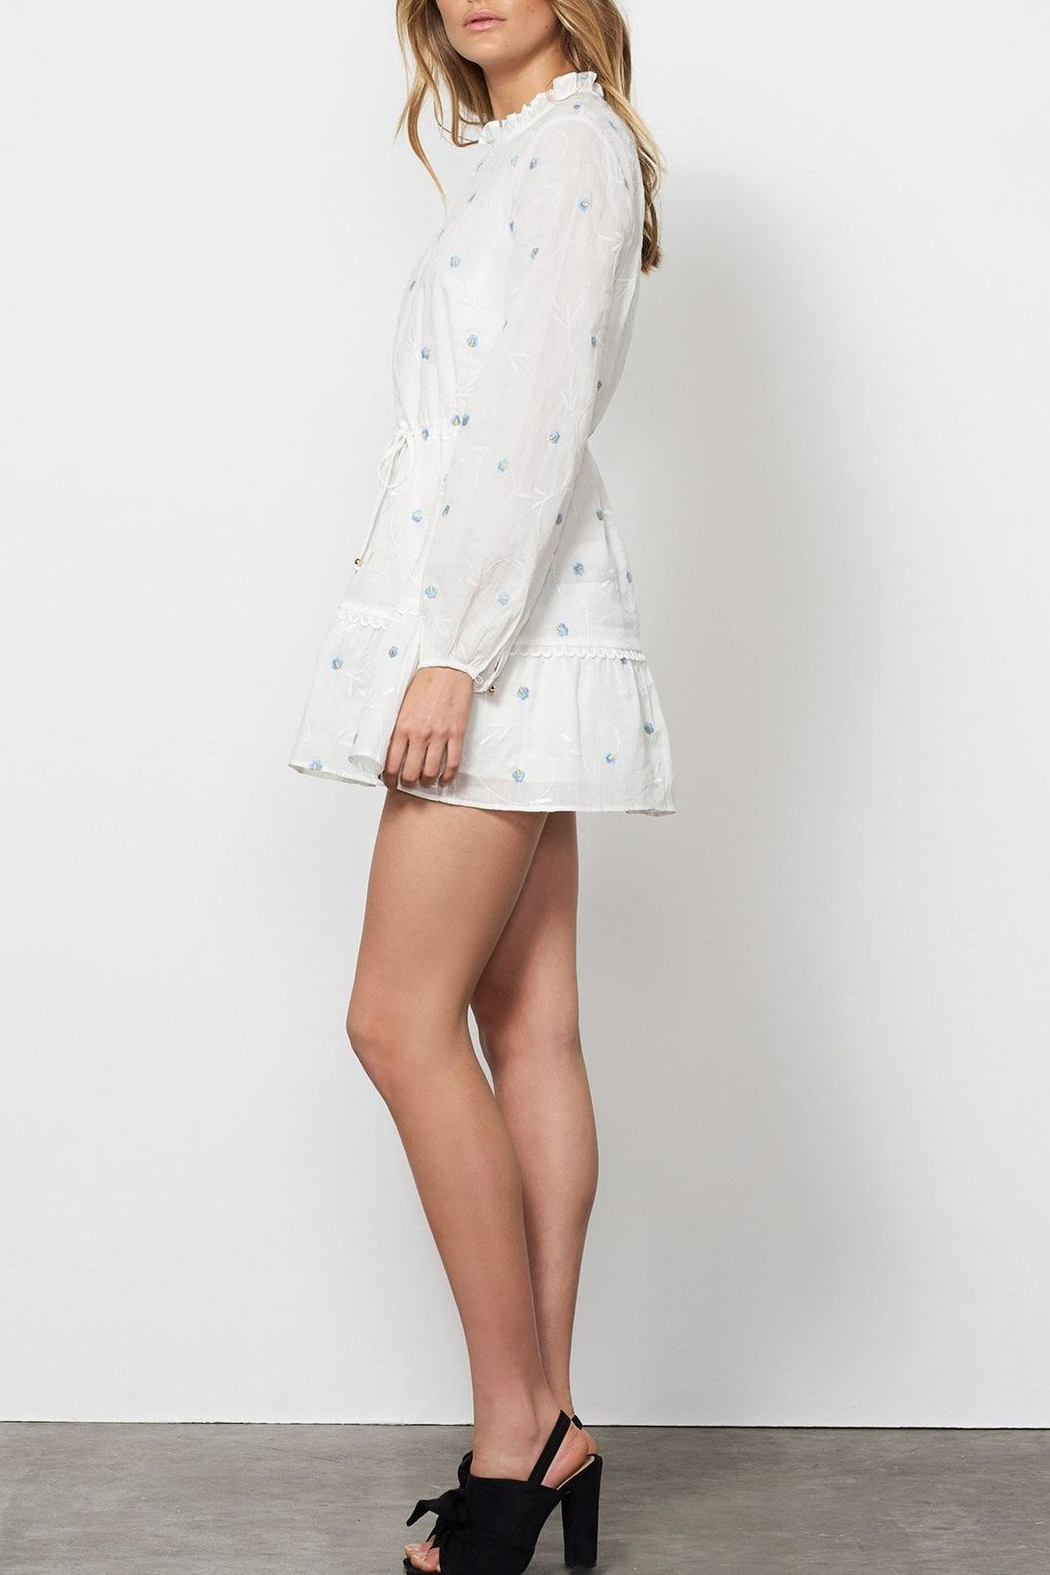 Stevie May Delirium Mini Dress - Side Cropped Image